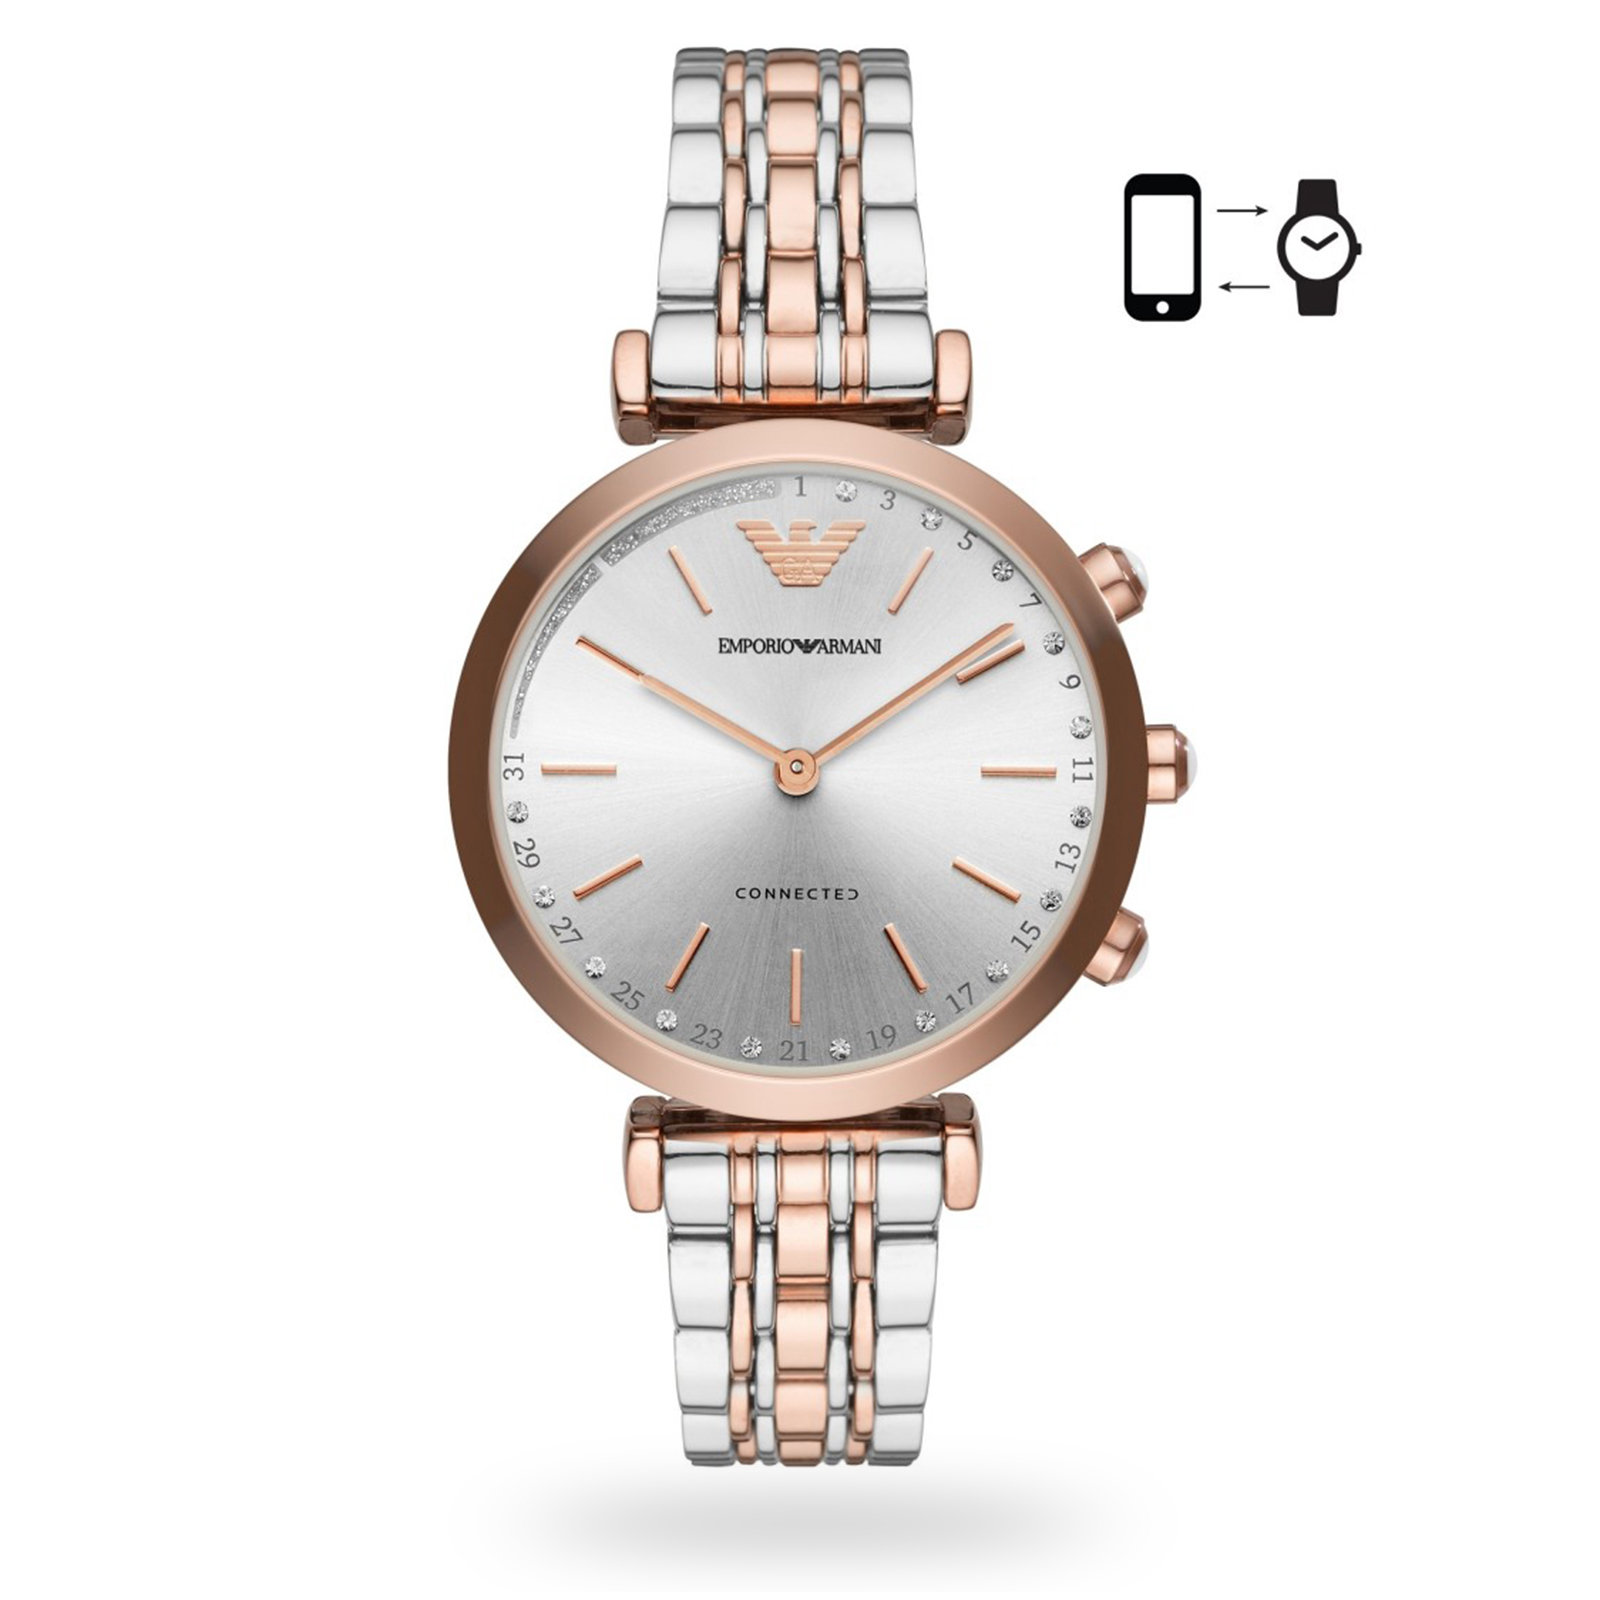 Emporio Armani Connected Ladies Hybrid Smartwatch